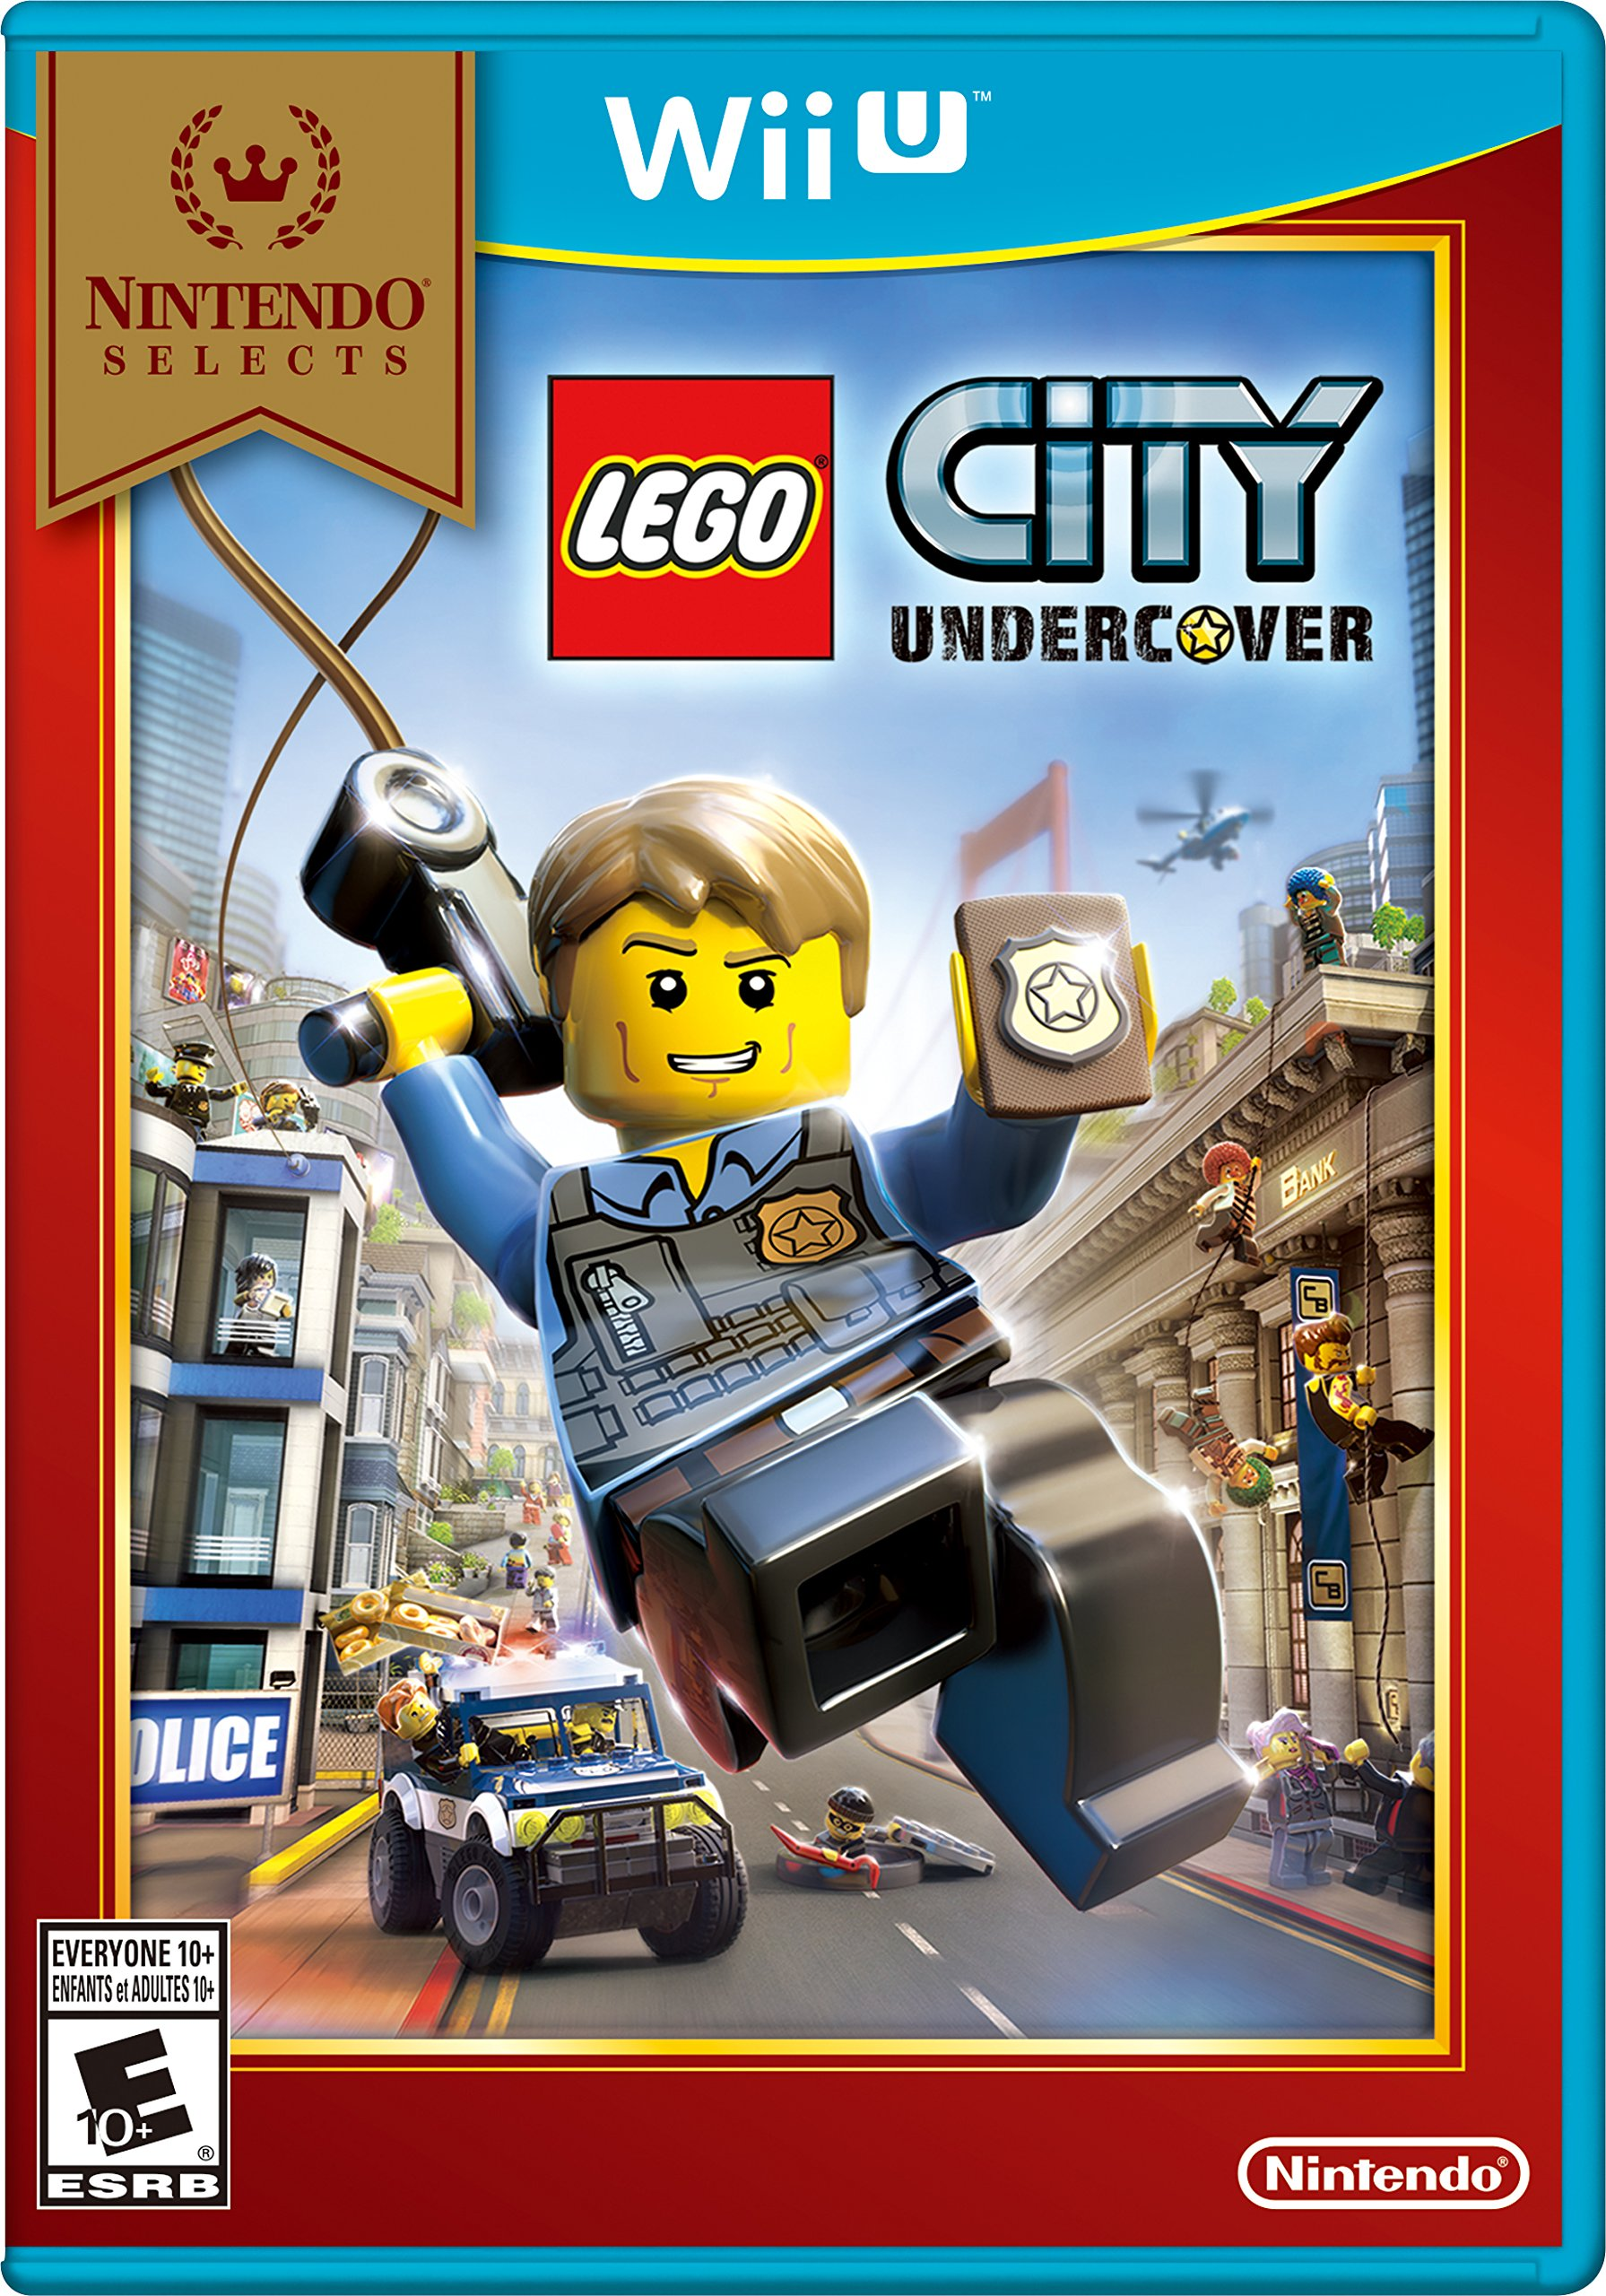 Nintendo Selects: Lego City: Undercover - Wii U